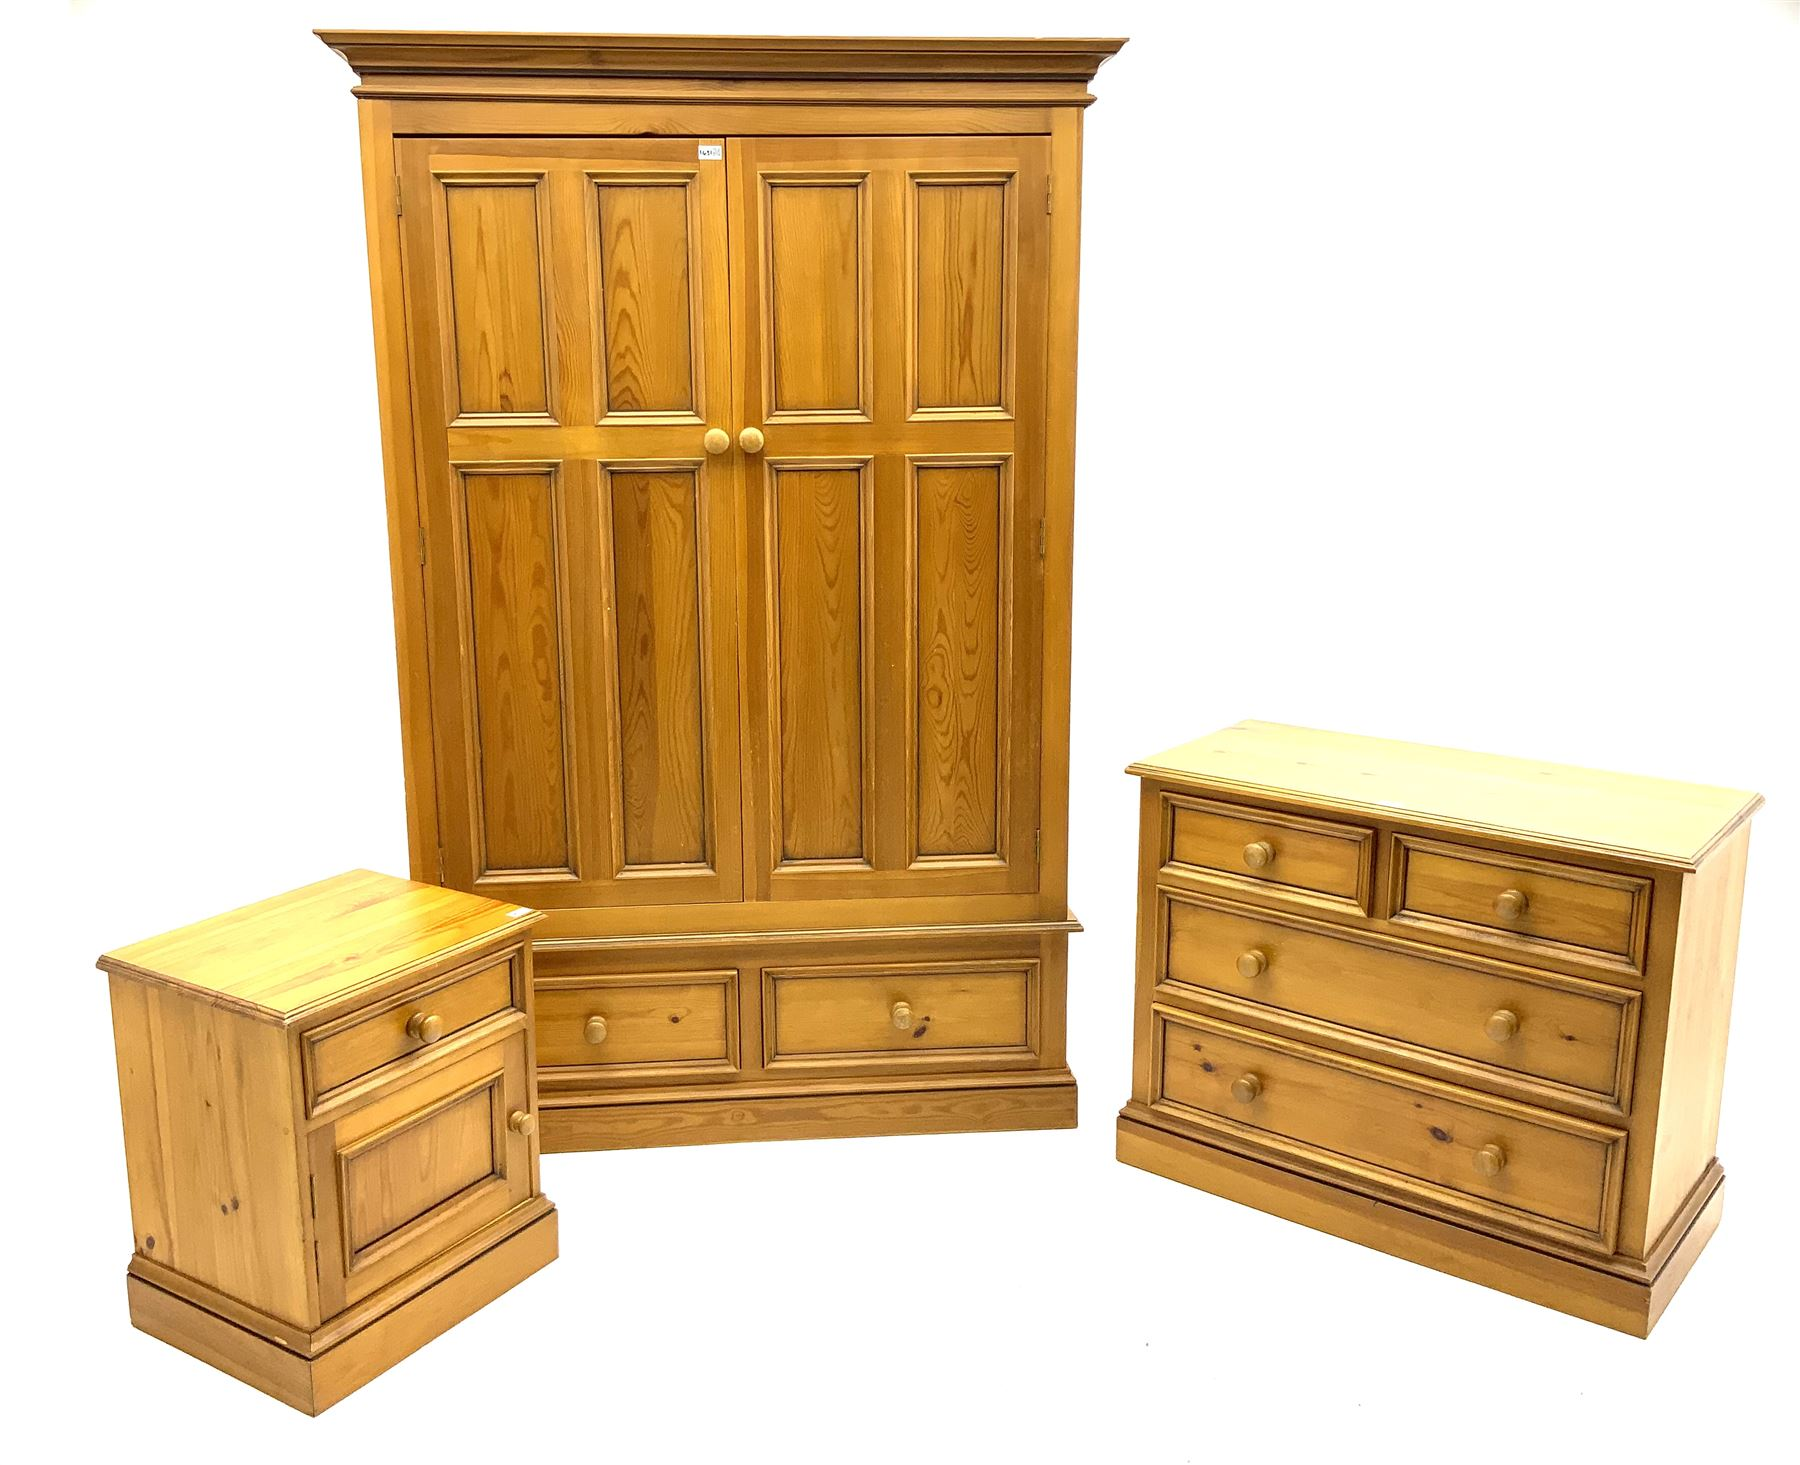 Polished pine bedroom set - double wardrobe fitted with two drawers (W135cm